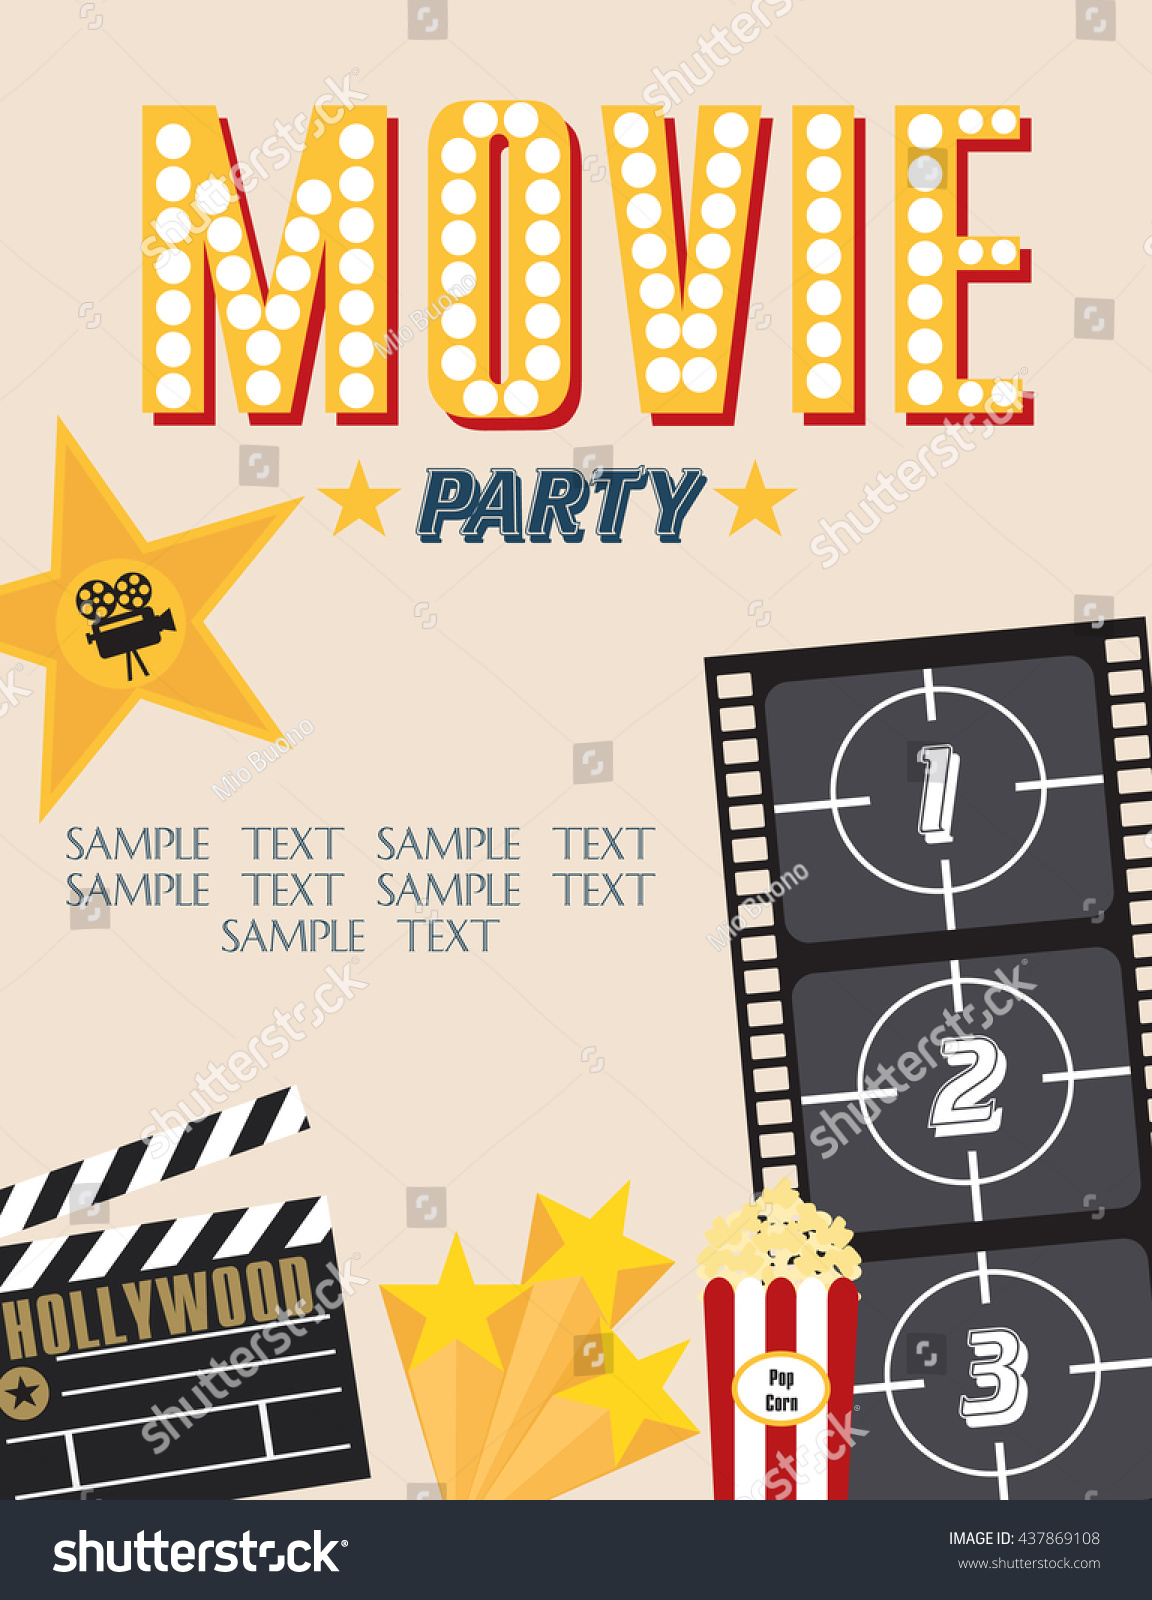 Movie Party Hollywood Party Invitation Card Stock Vector 437869108 ...